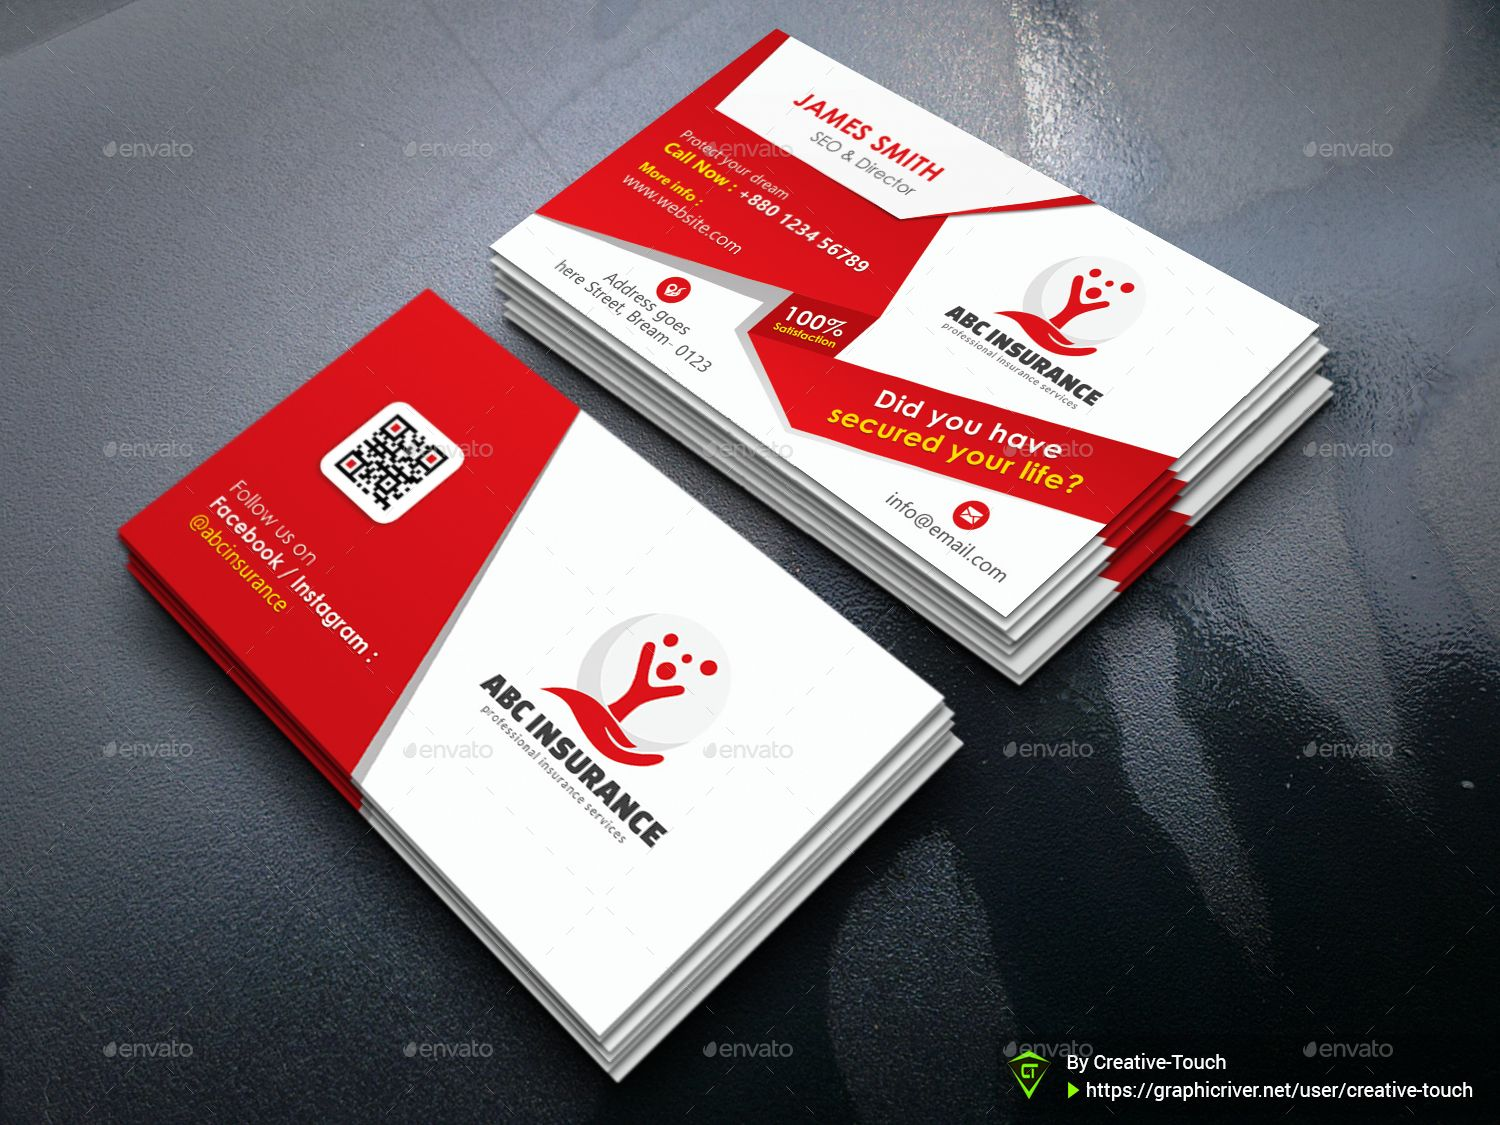 Corporate insurance business card with images business